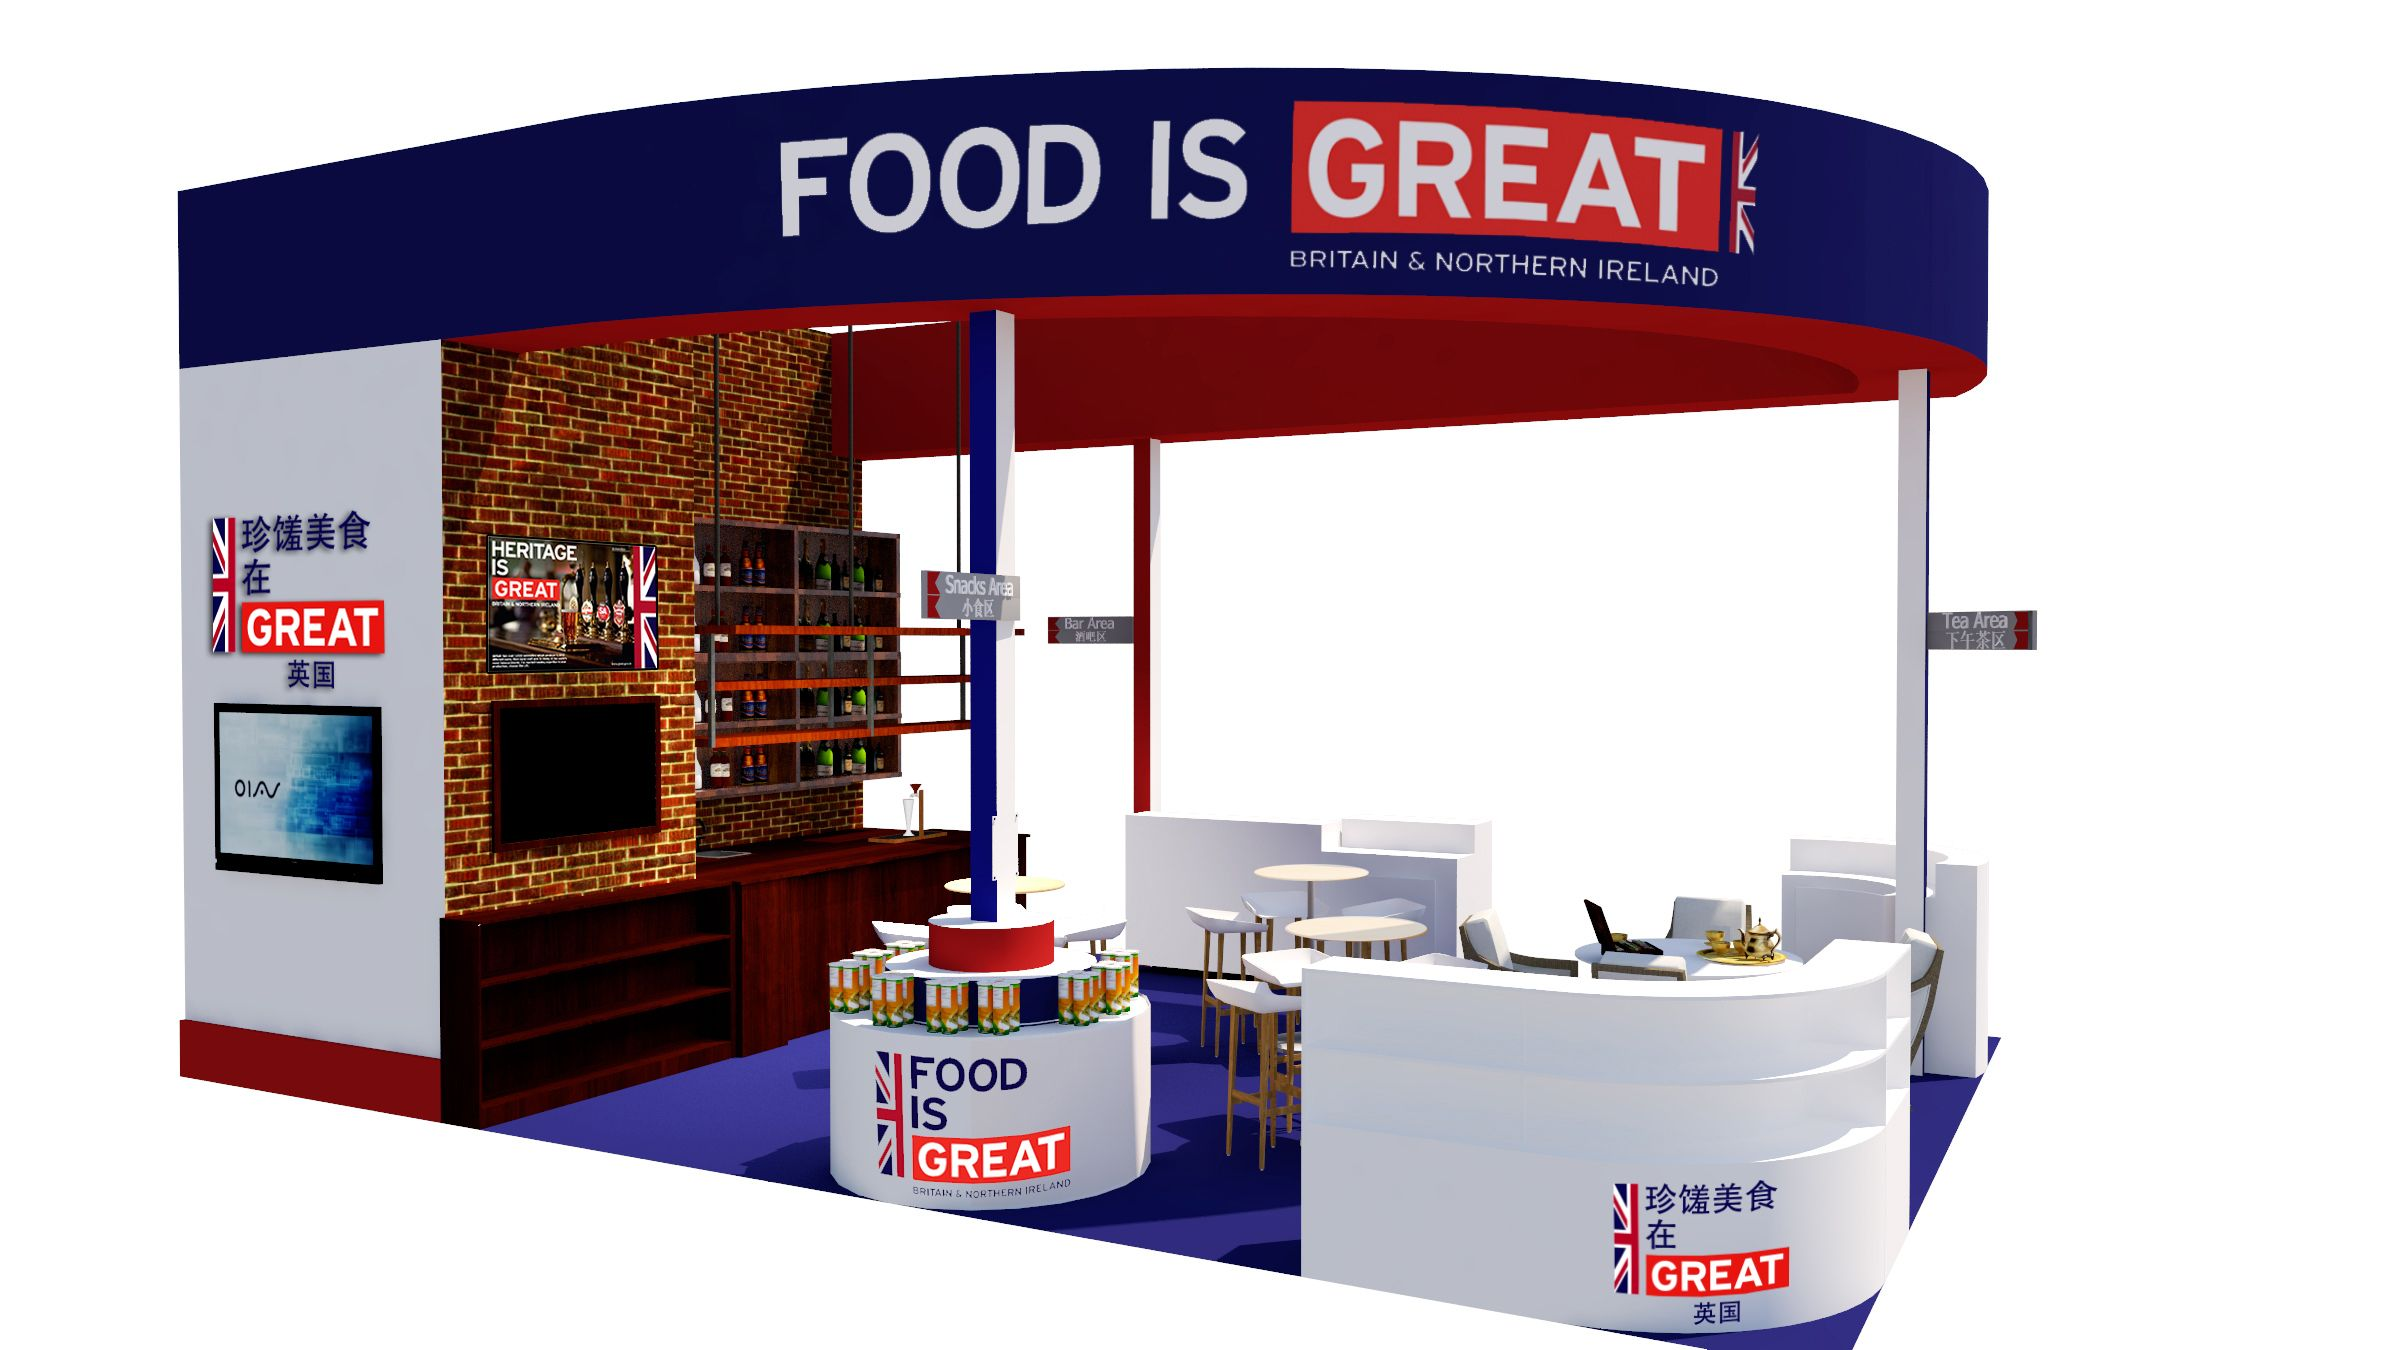 """For the participation of the Department for International Trade of the UK in the 98th China Food and Drinks Fair in Chengdu, 5 Star Plus Retail Design created a large 50 square meter pavilion matching the """"Britain is GREAT"""" theme. The stand was designed to be visible from far away, have maximum space for displaying products, easy interaction with visitors, a focus on Britain's national colors, and providing enough space for different products. #retaildesign #exhibition #exhibitiondesign"""